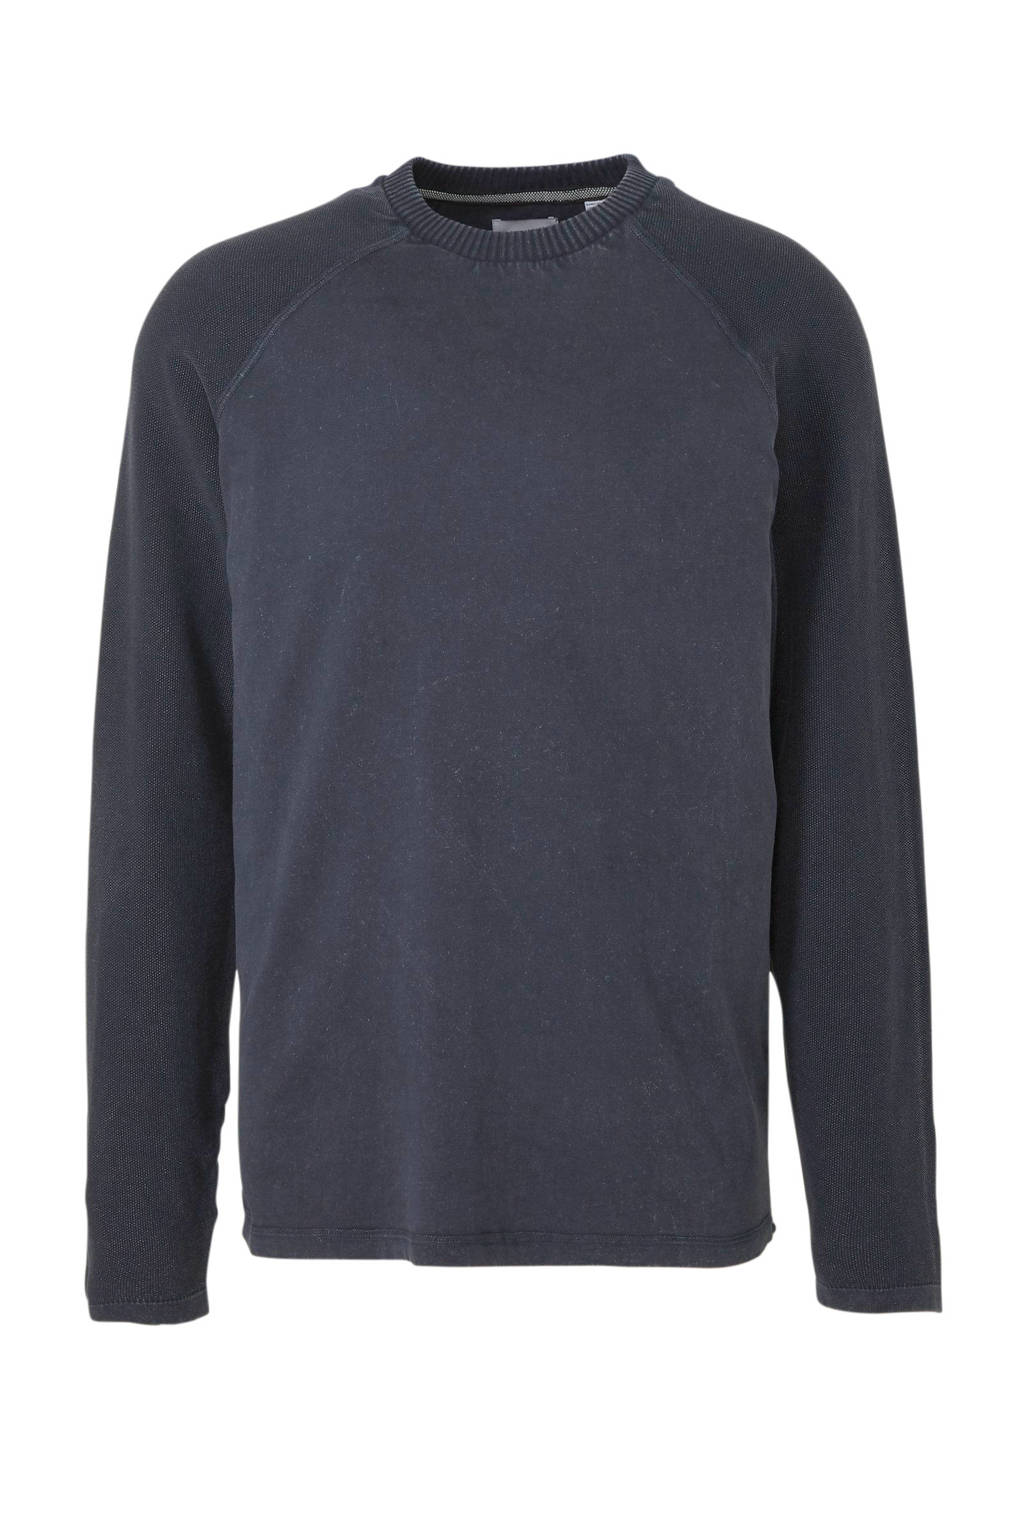 Only & Sons trui, Donkerblauw